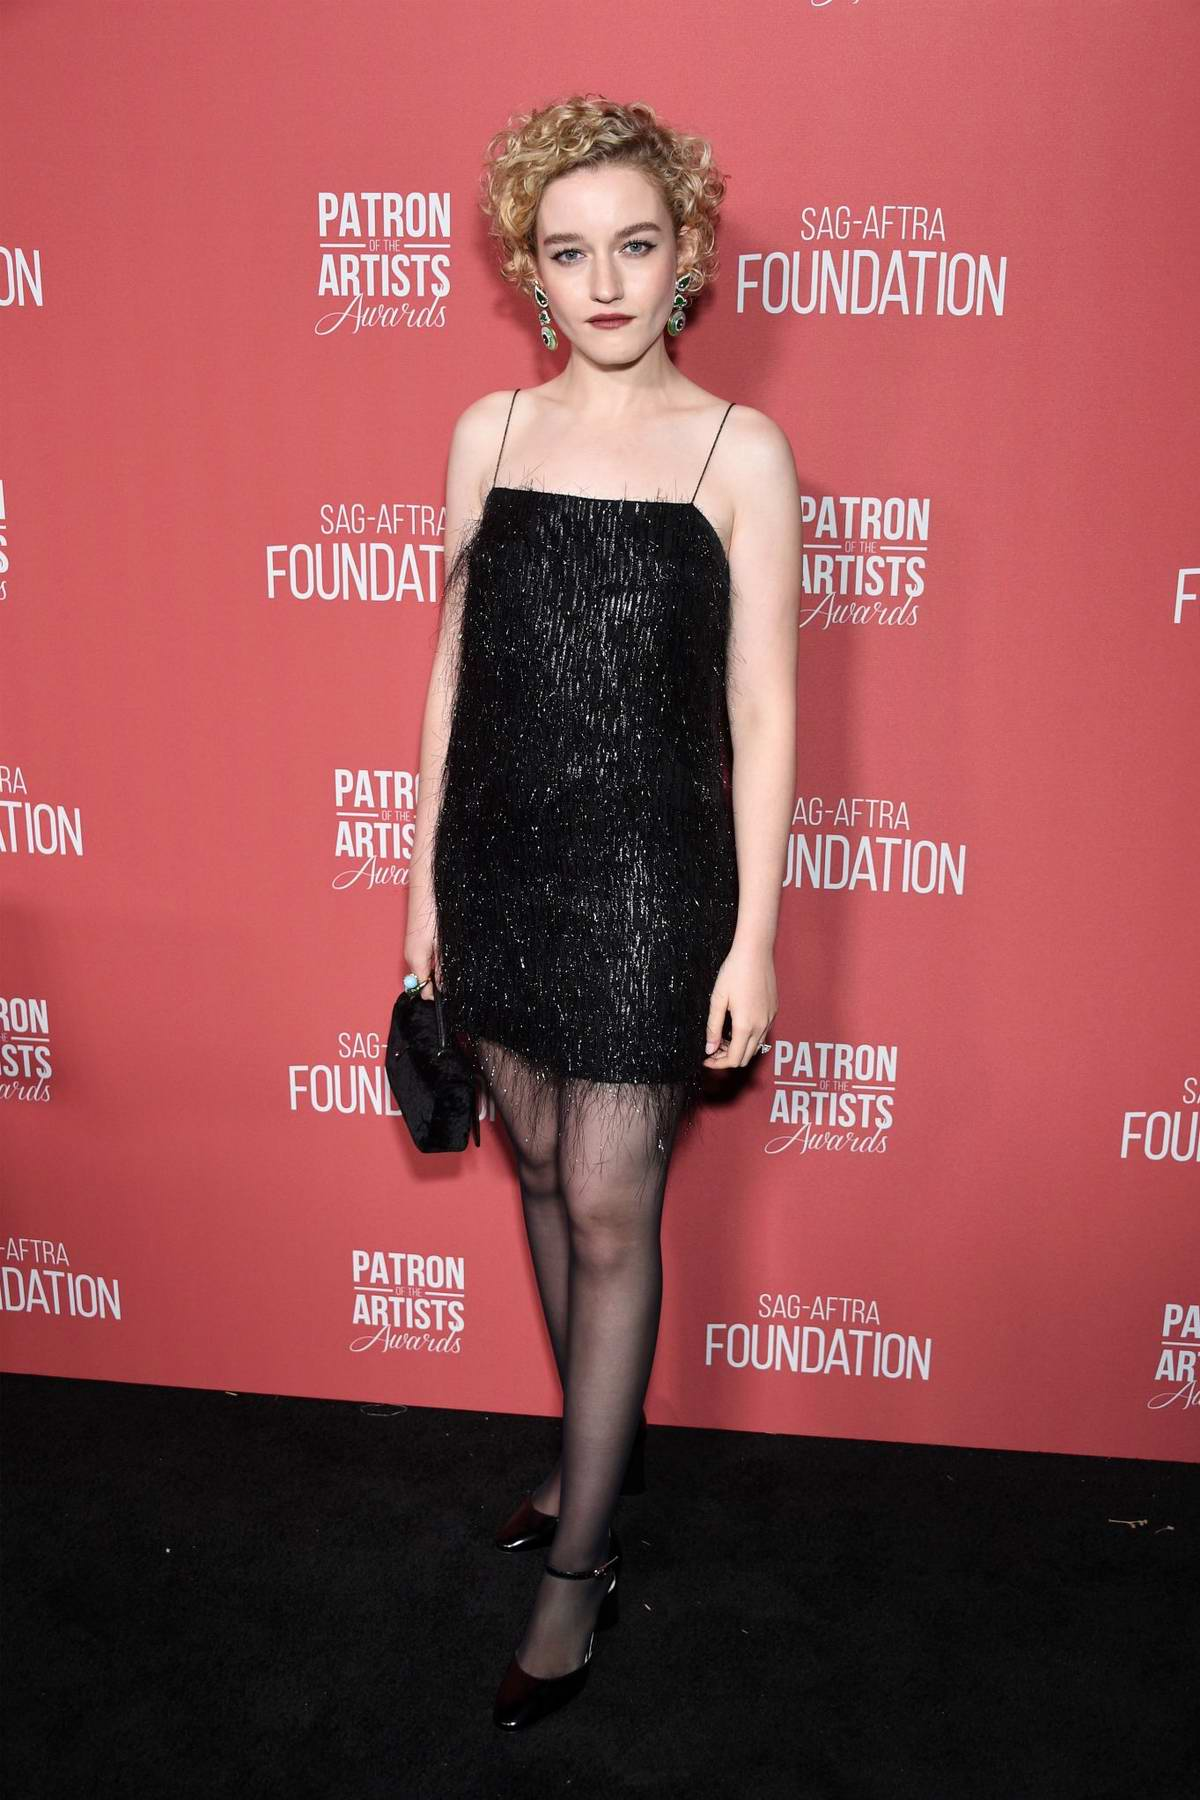 Julia Garner attends the 4th Annual Patron of the Artists Awards in Los Angeles